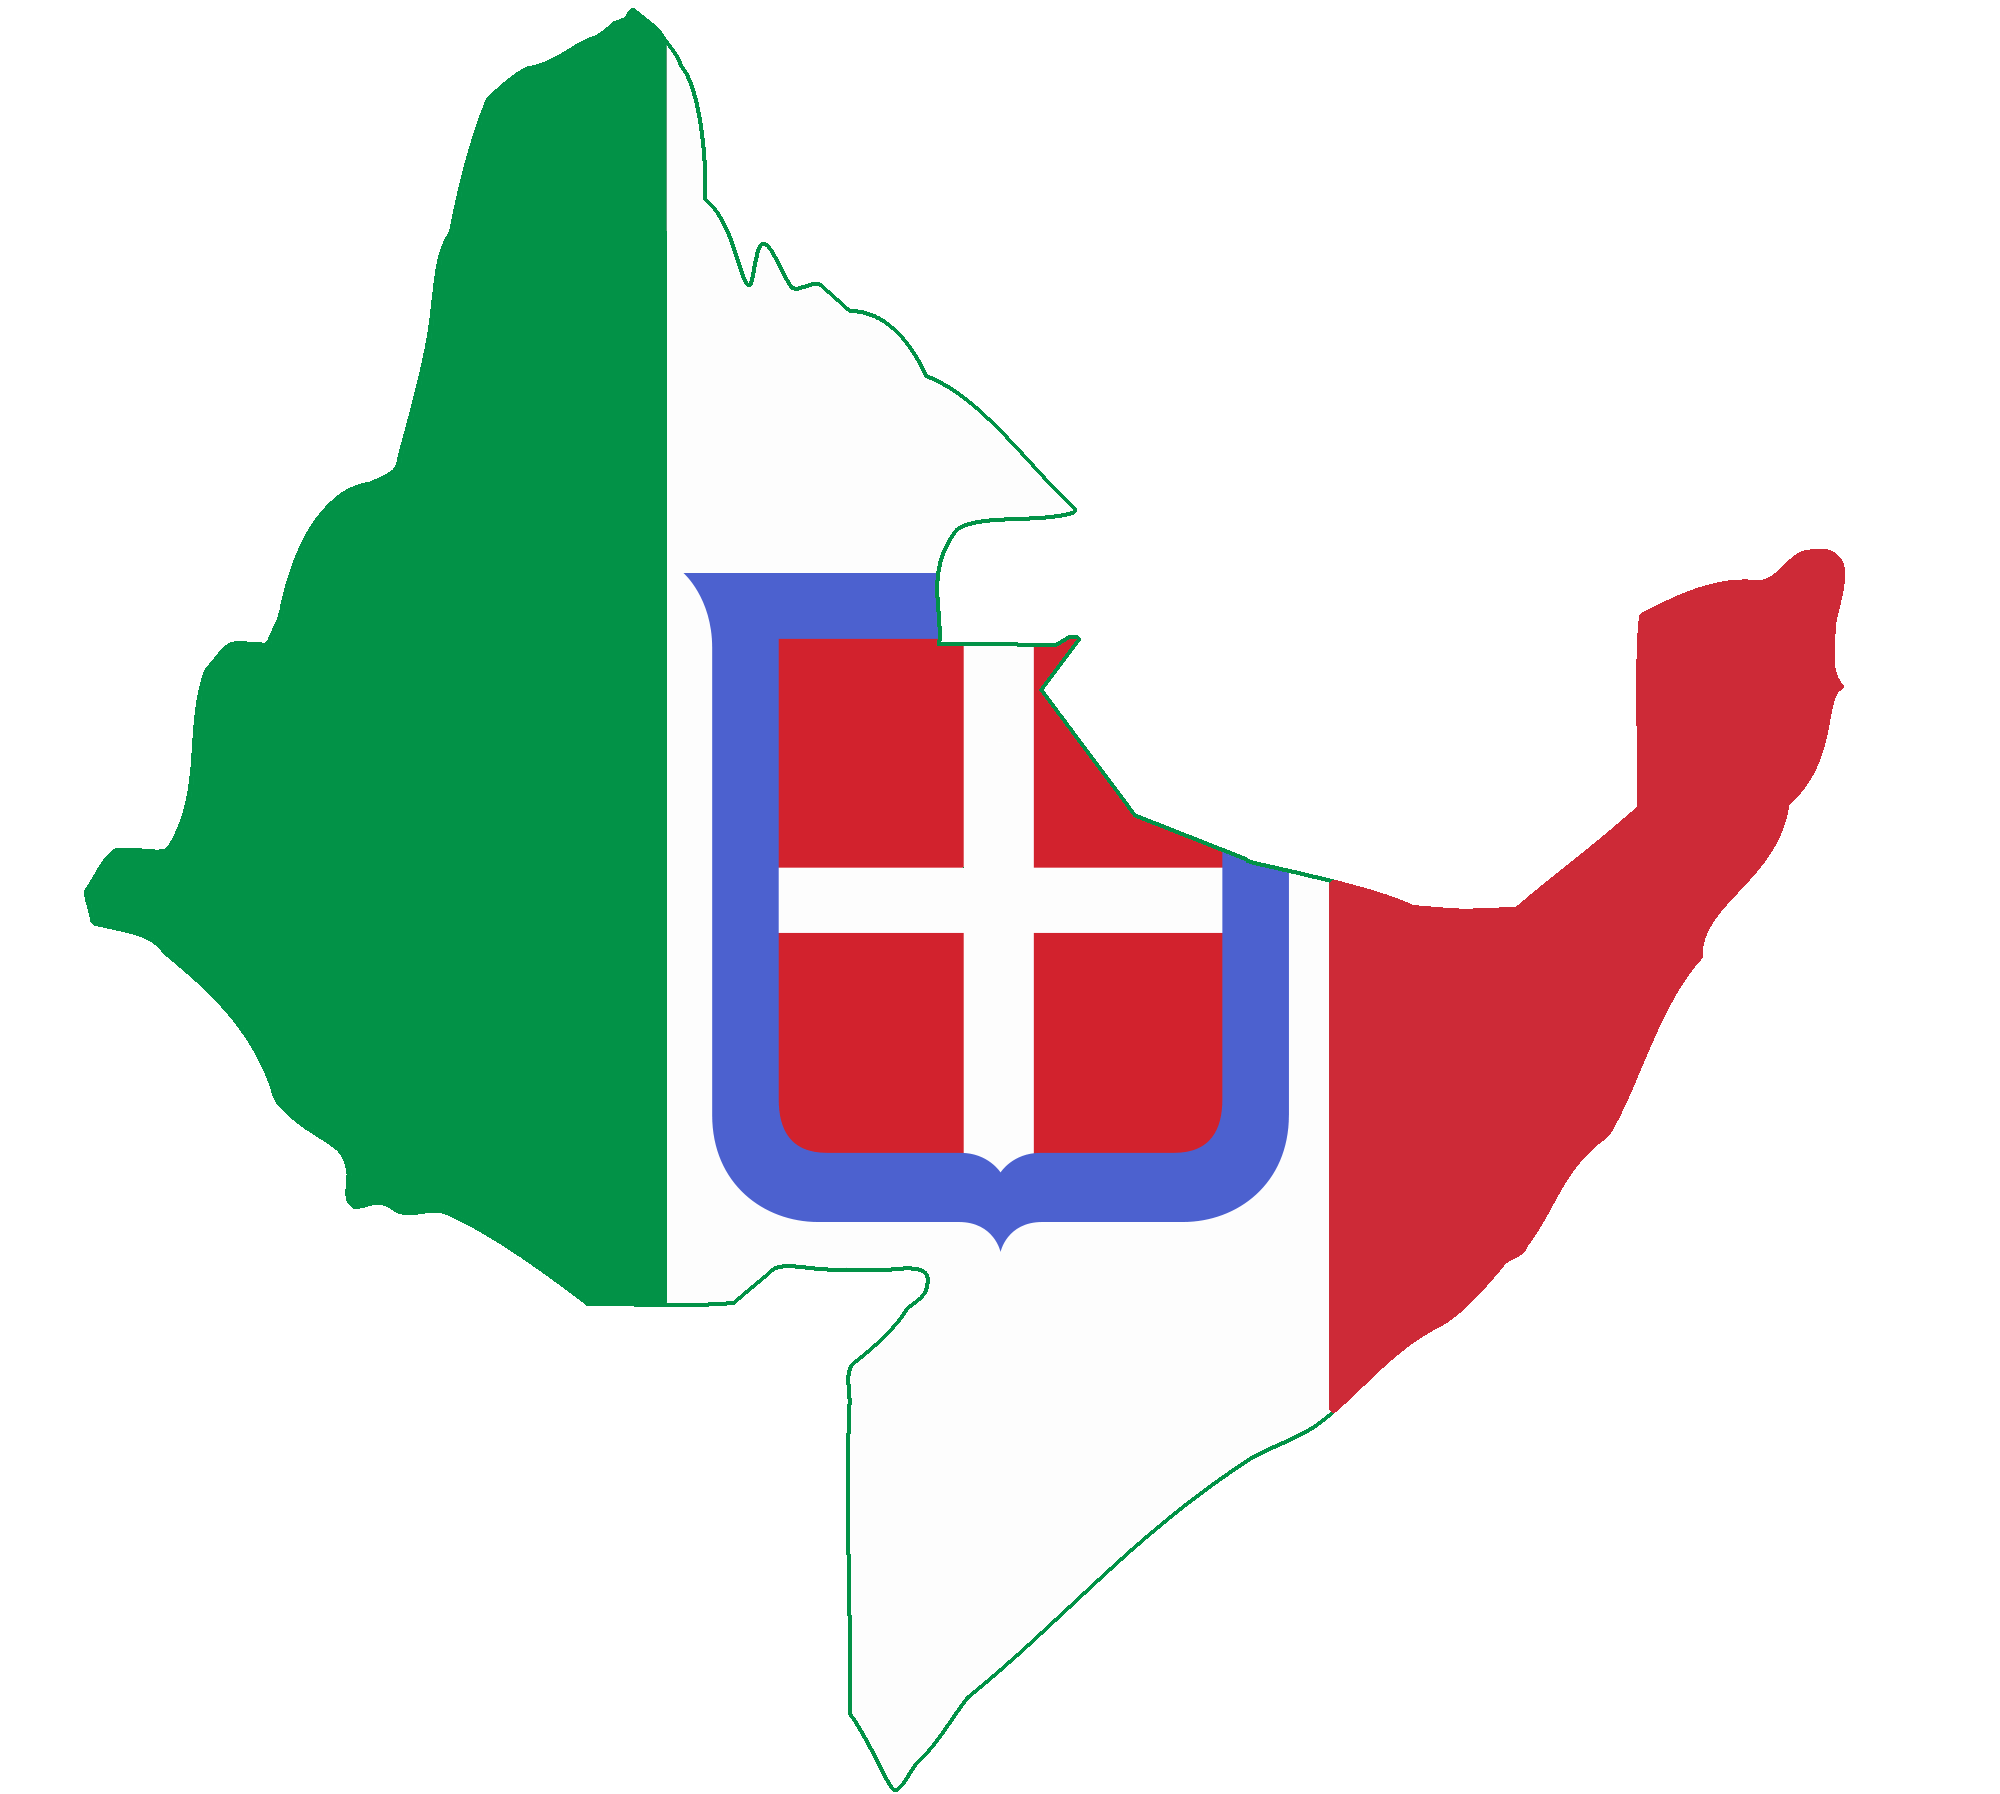 File:Flag Map of Italian East Africa (1936 - 1941).png ... on map of africa 1960, map of africa and italy, map of africa 1940, map of africa 1955, map of africa today, map of africa 2014, map of africa east ethiopia, map of africa with kenya highlighted, map of africa 1941,